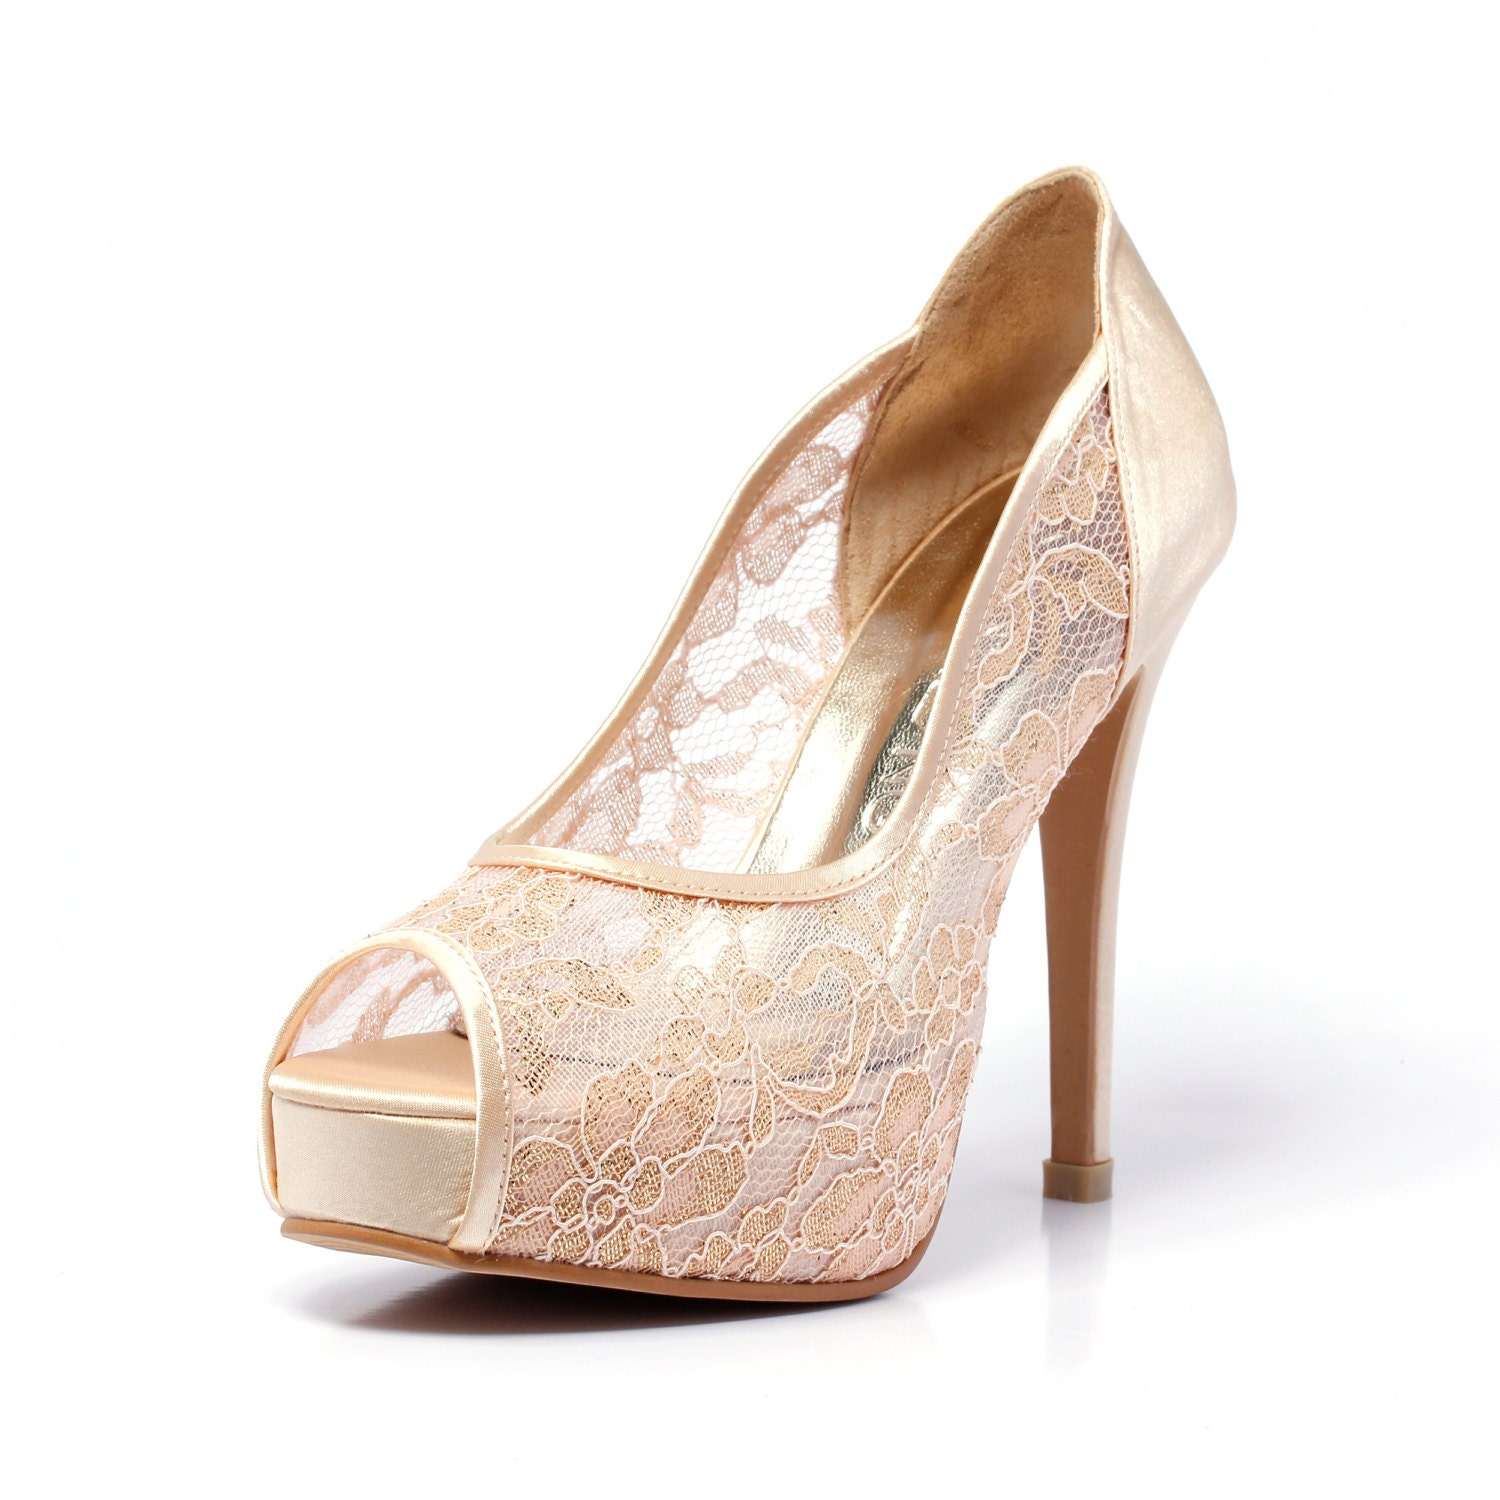 Trailblazer Champagne Gold Lace Wedding Shoe Peep Lace Satin